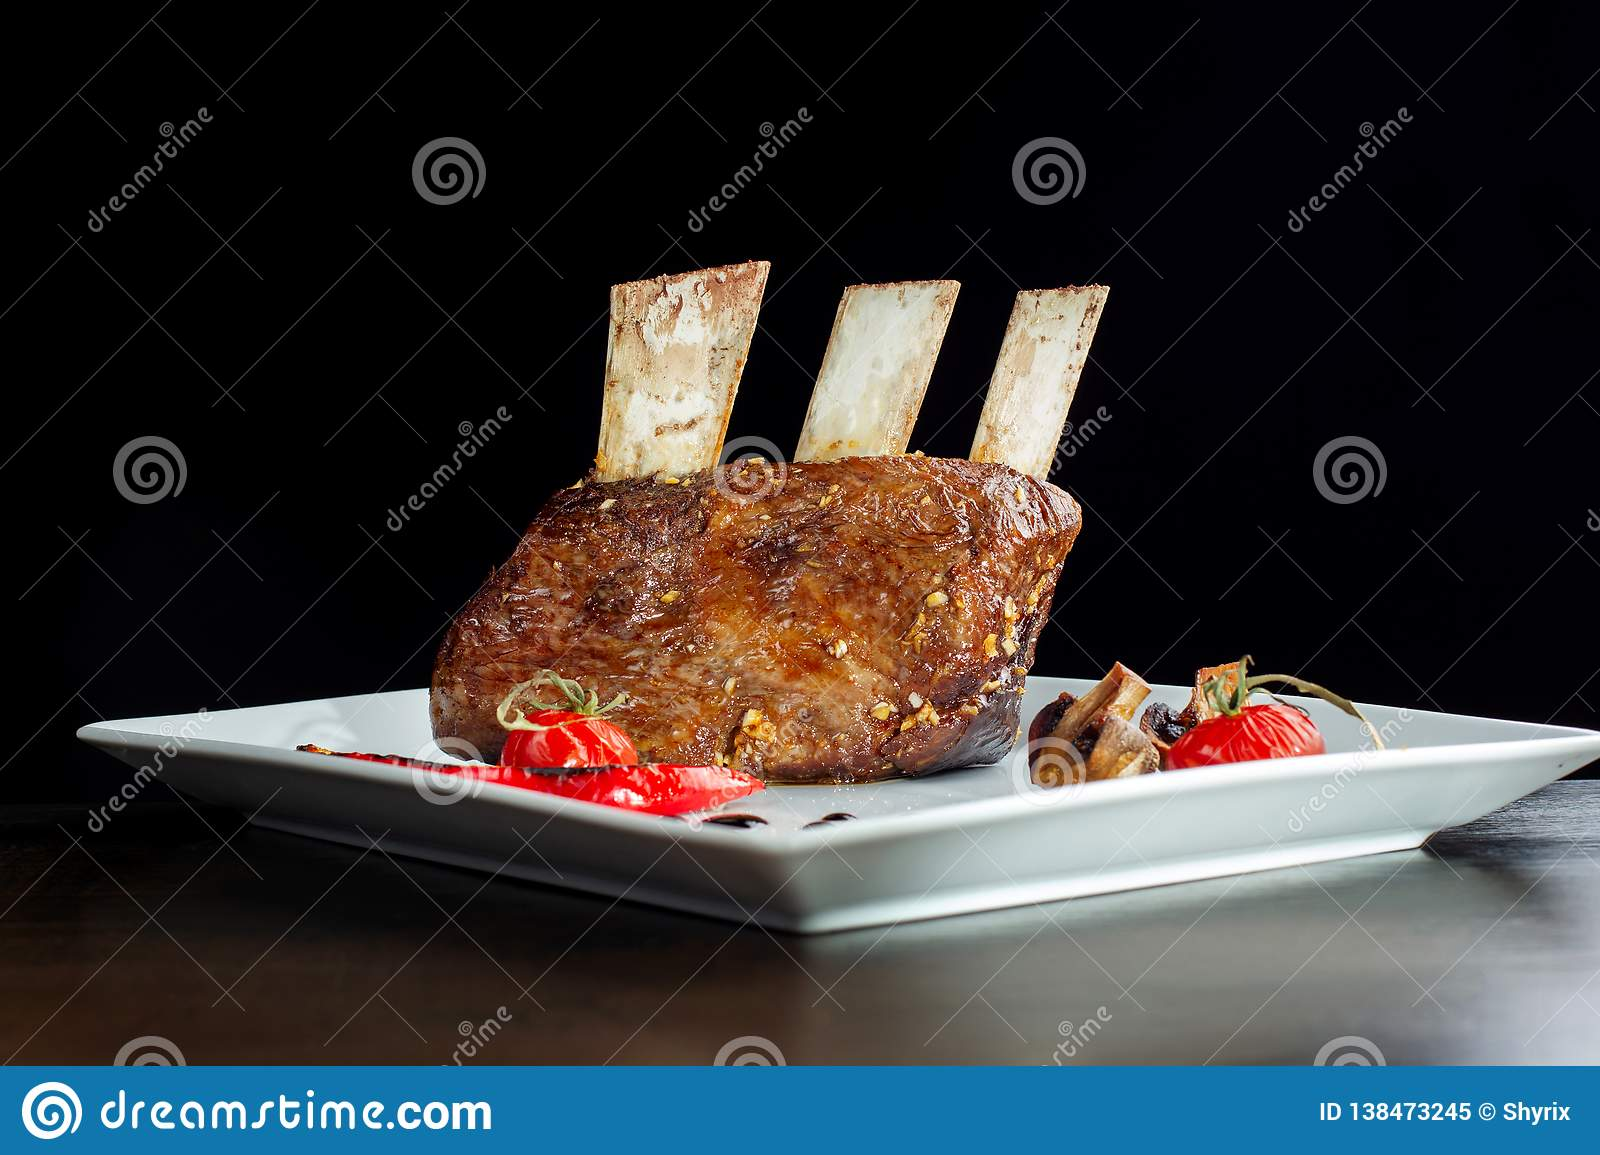 Delicious barbecued ribs seasoned served with mushrooms on a white plate.